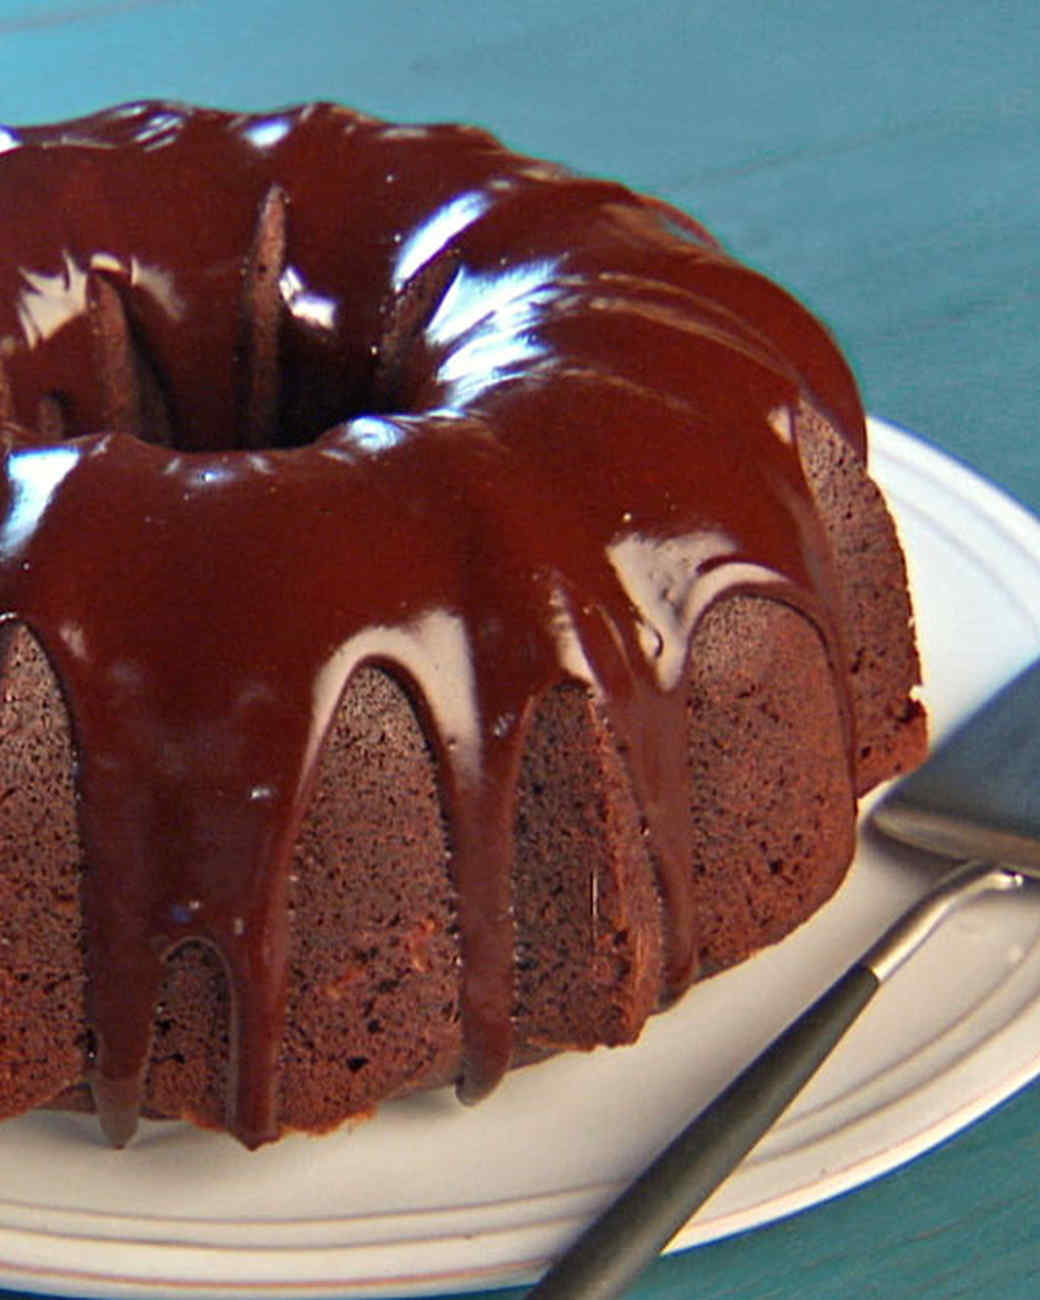 Martha Stewart Yellow Bundt Cake